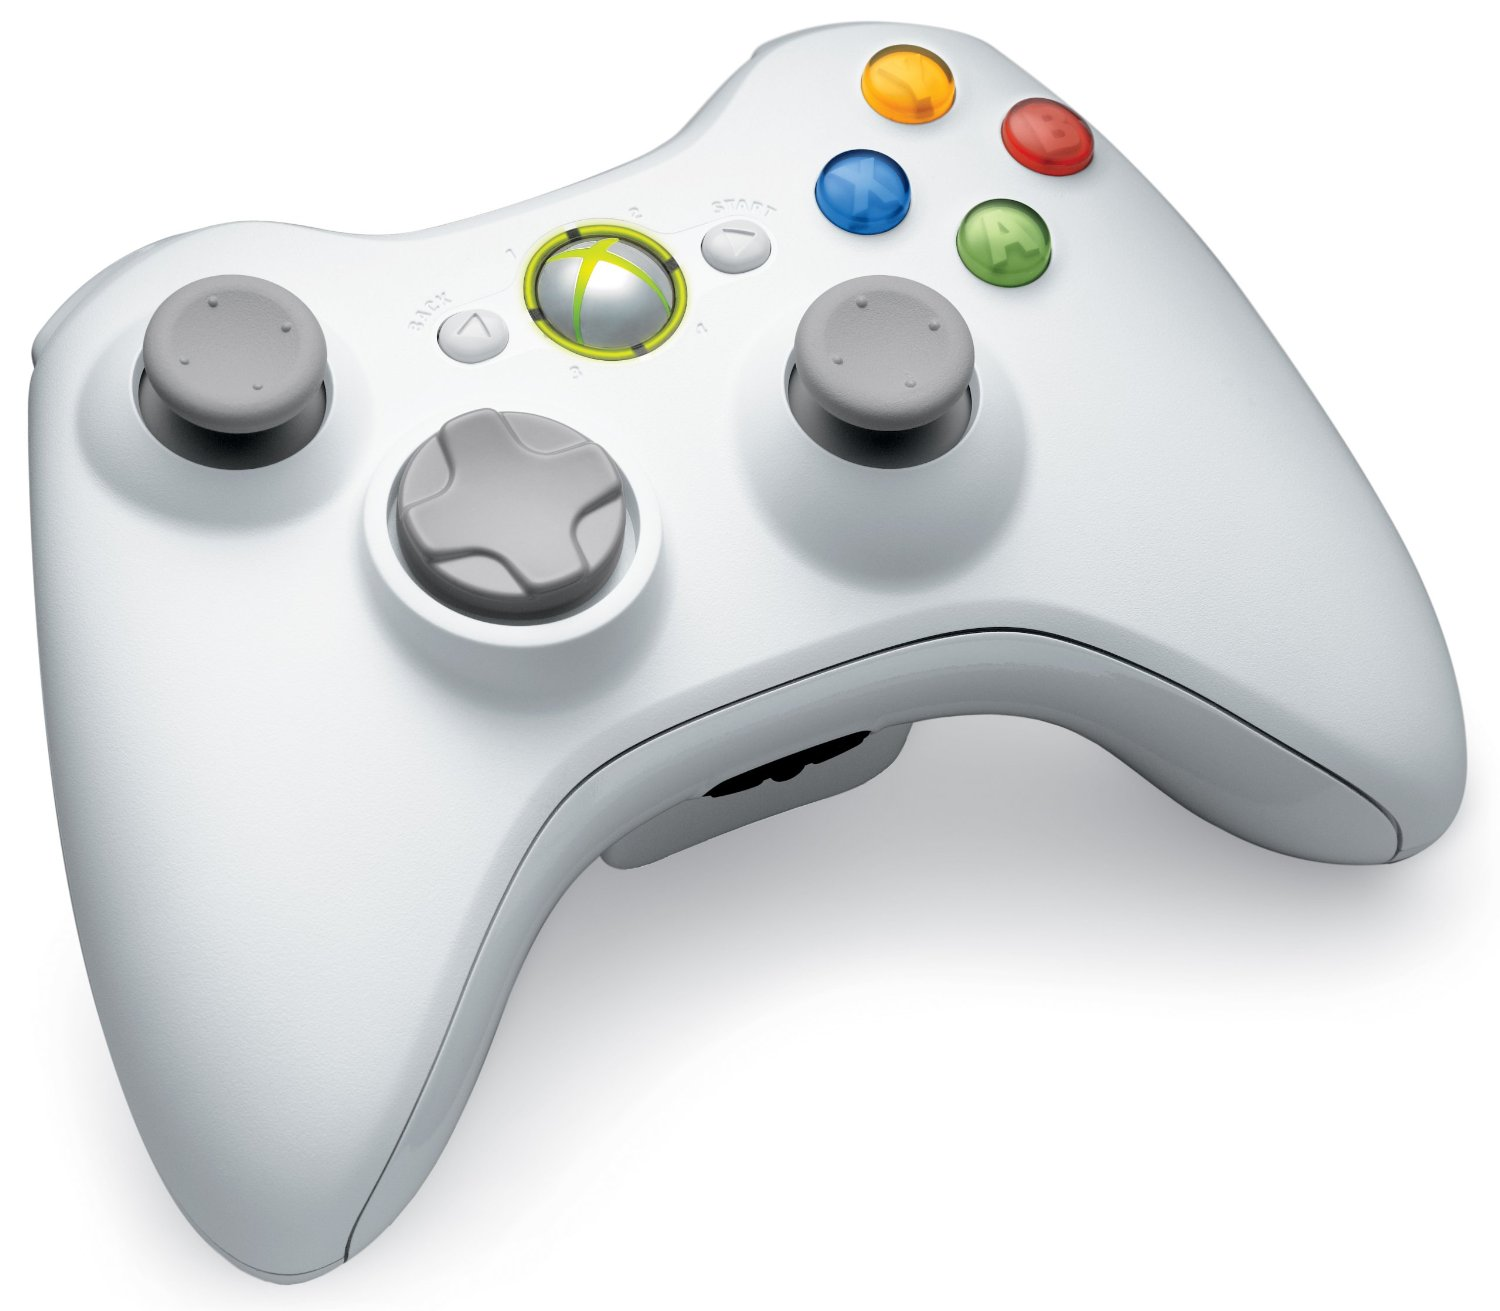 Control your Raspberry Pi by using a wireless Xbox 360 controller.